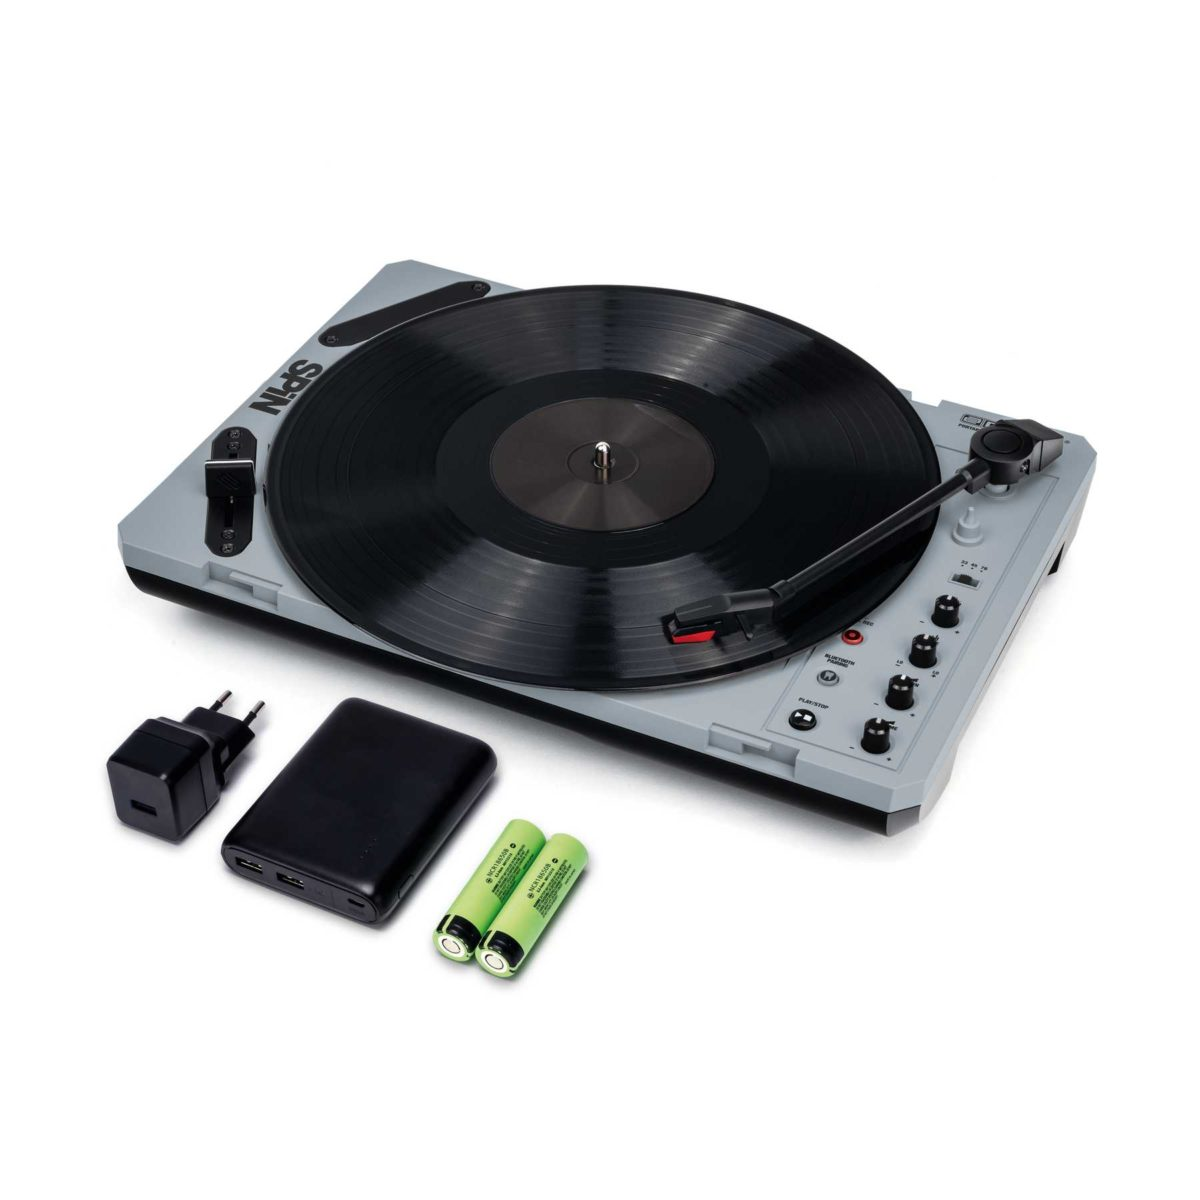 Reloop Spin Portable Turntable System